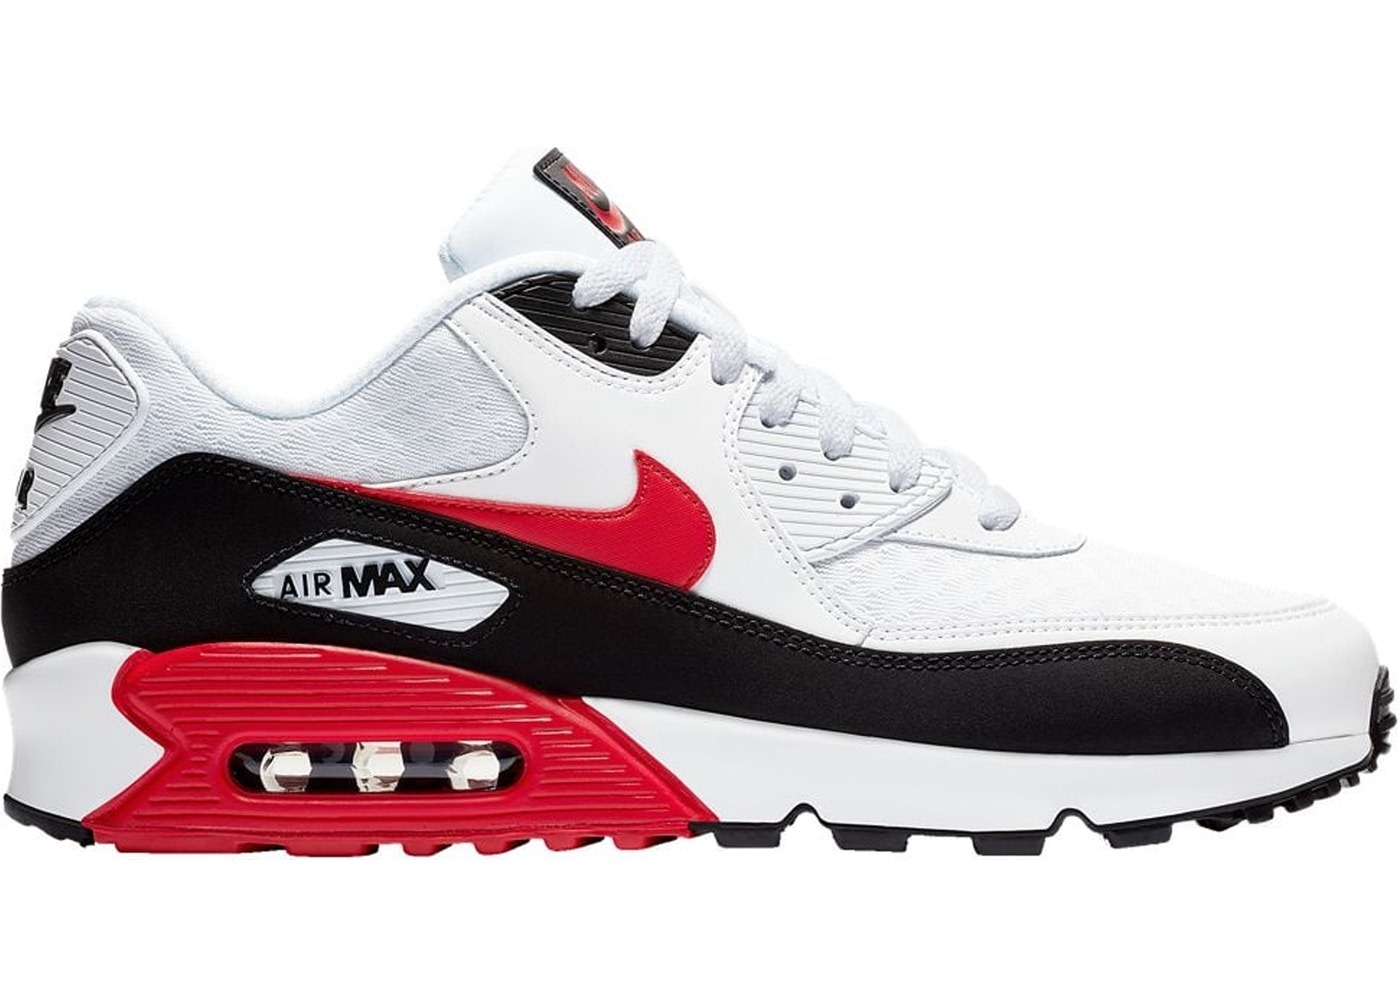 521d881d05a2 Nike Air Max 90 Shoes - Release Date